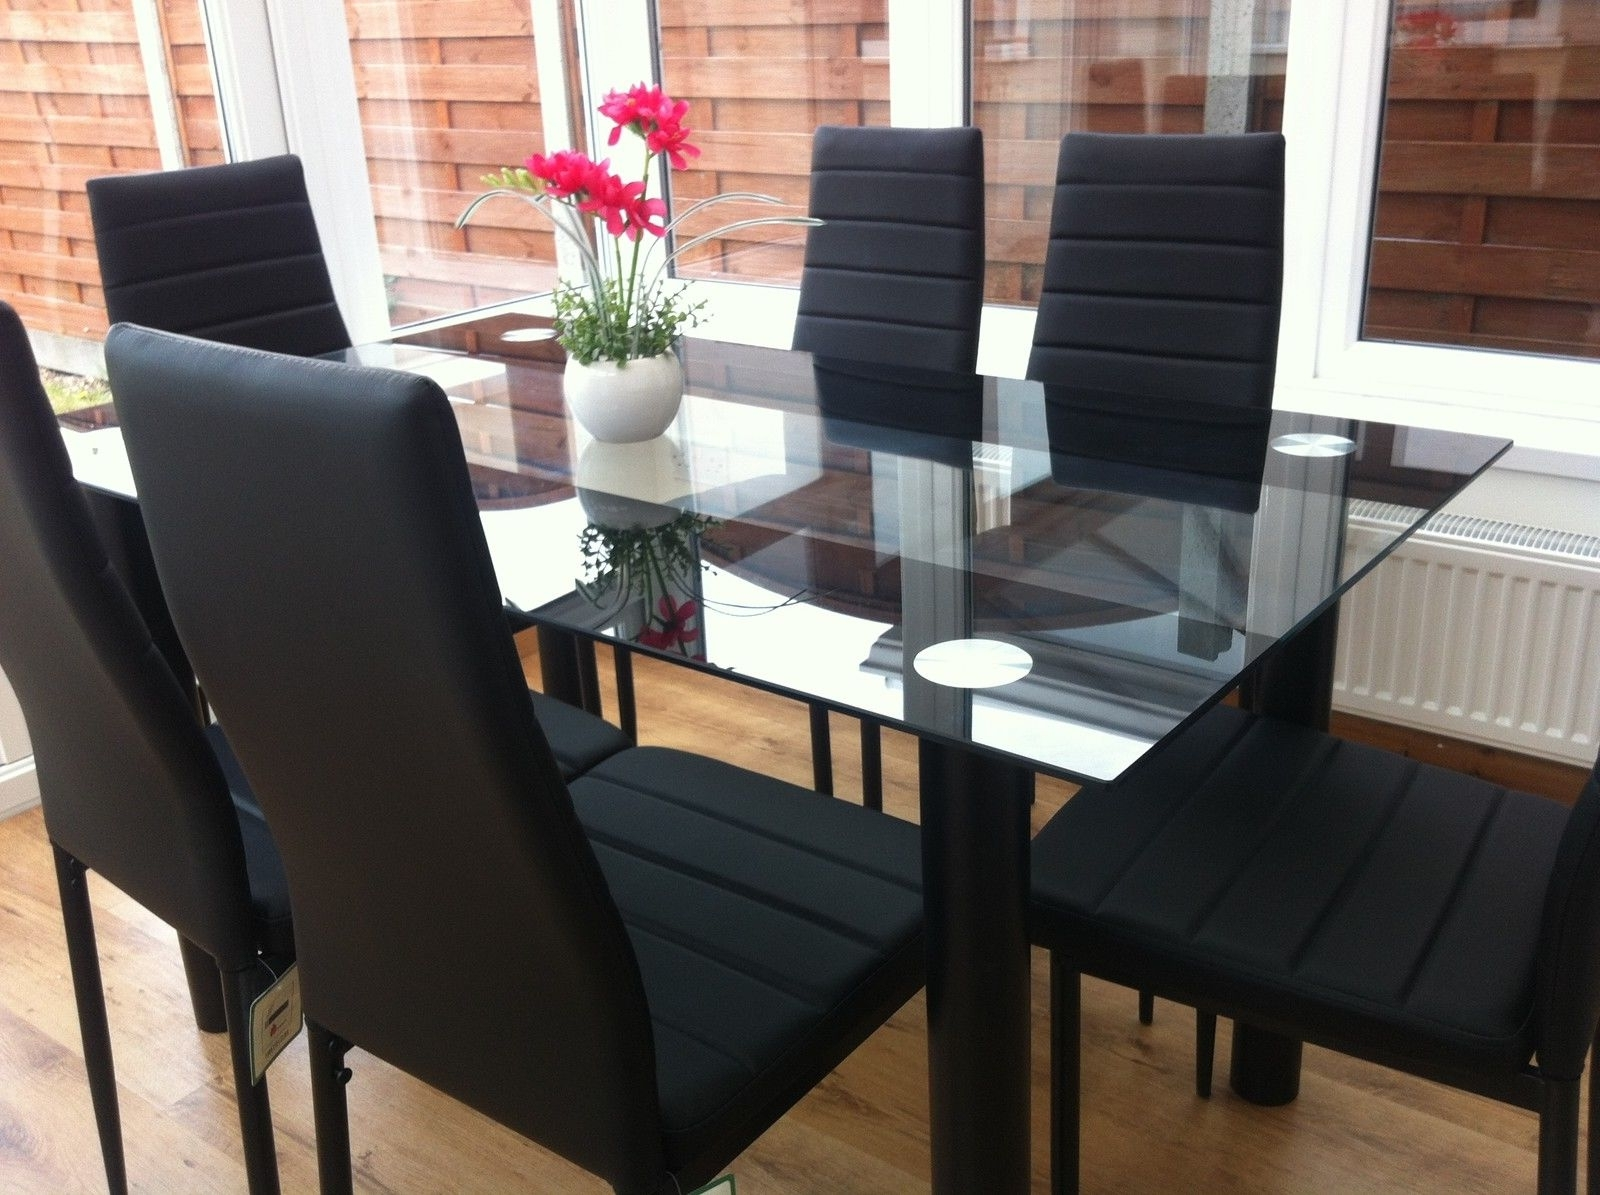 Stunning Glass Dining Table Set And With 4 Or 6 Faux Leather Chairs Throughout Recent Black Glass Dining Tables With 6 Chairs (View 22 of 25)